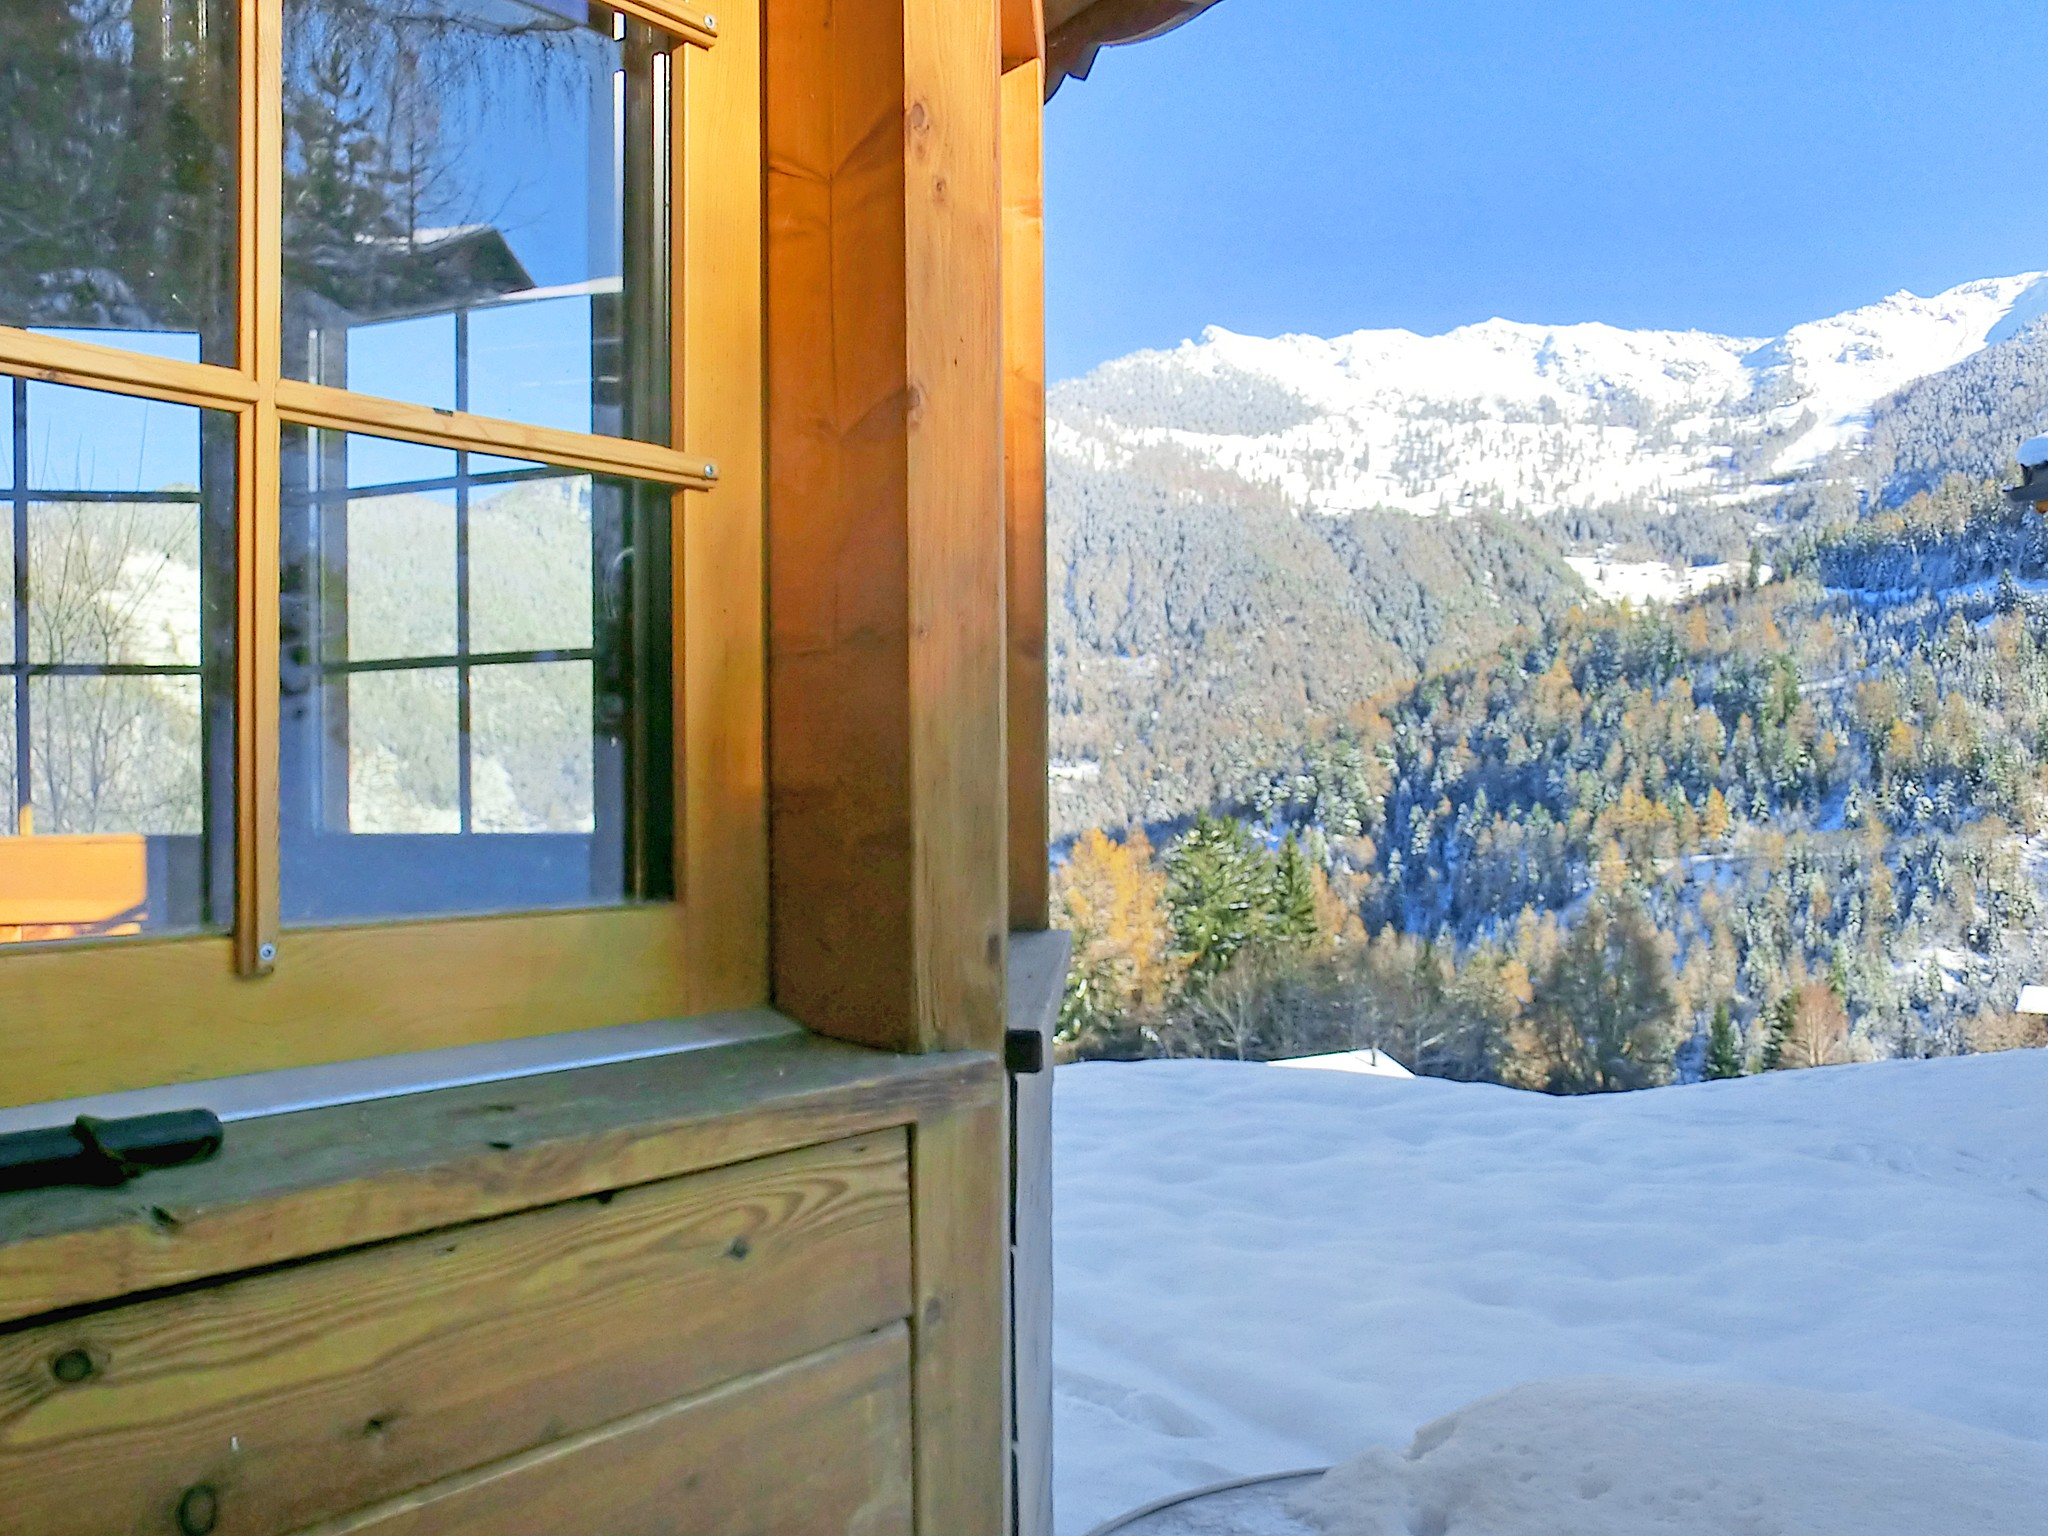 Chalet Bellevue - panoramic view